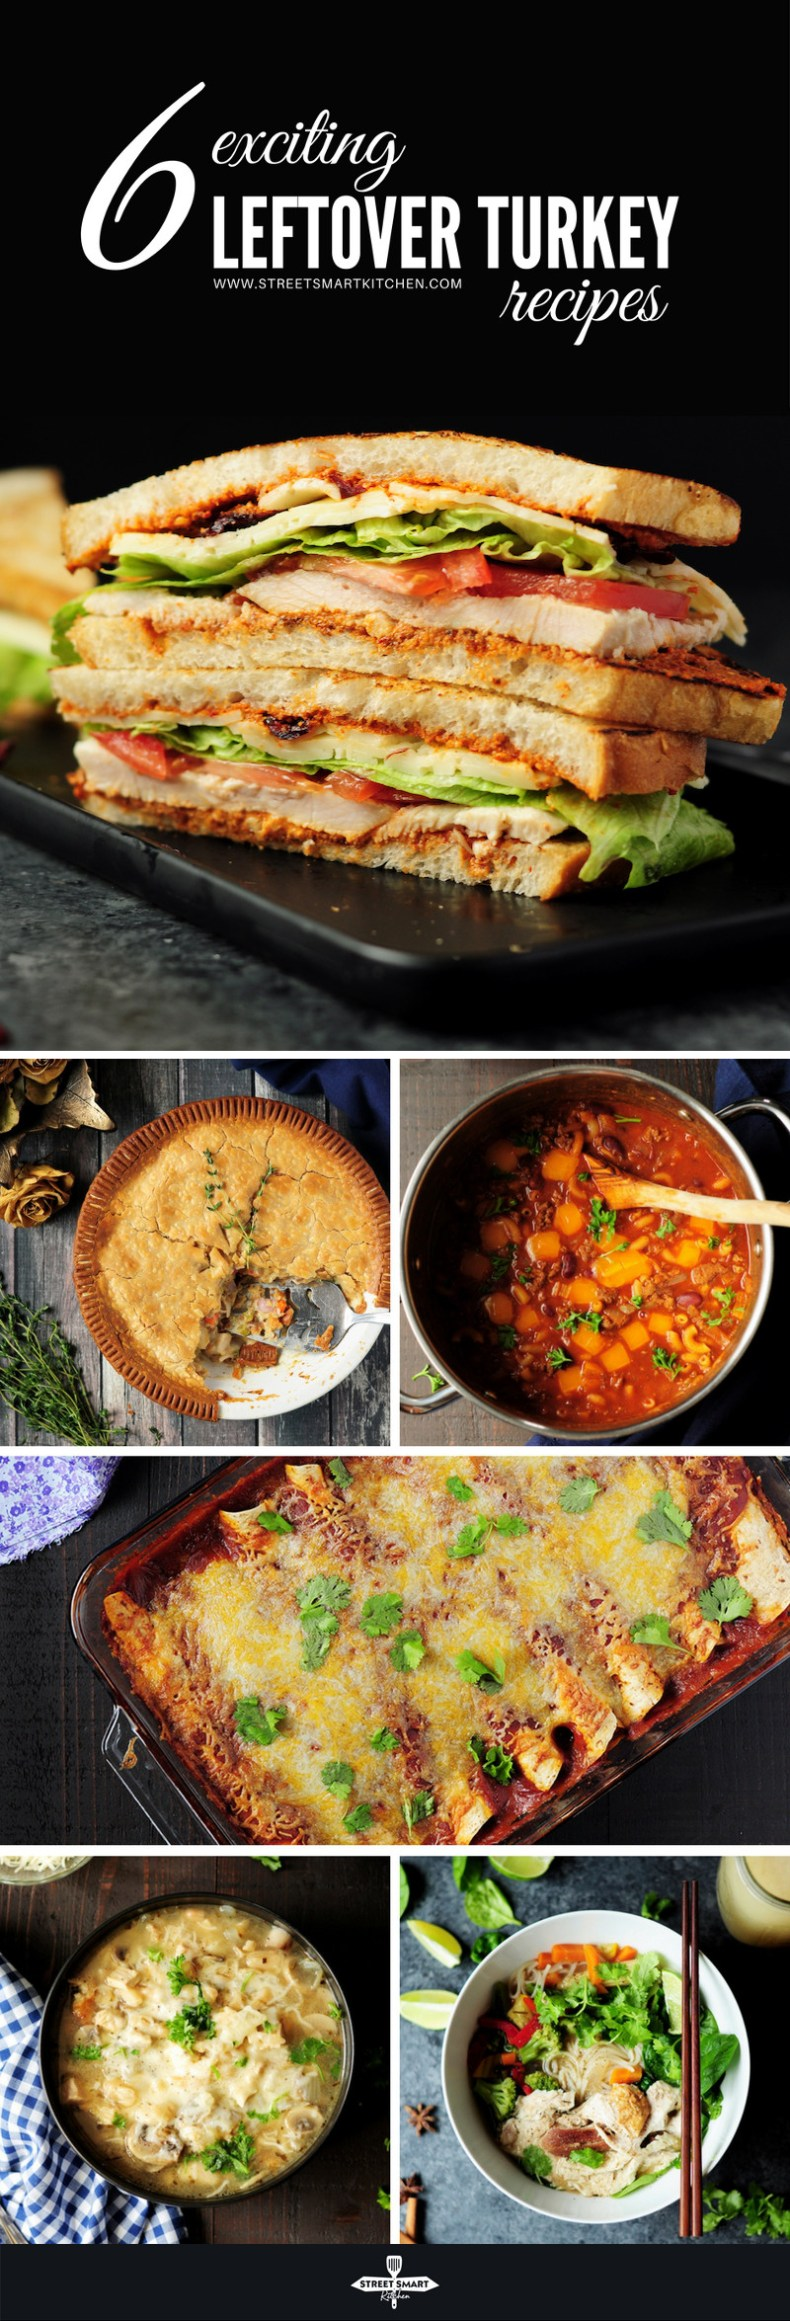 Don't miss out on these six leftover turkey recipes to create exciting new dishes out of the rest of your bird after Thanksgiving.